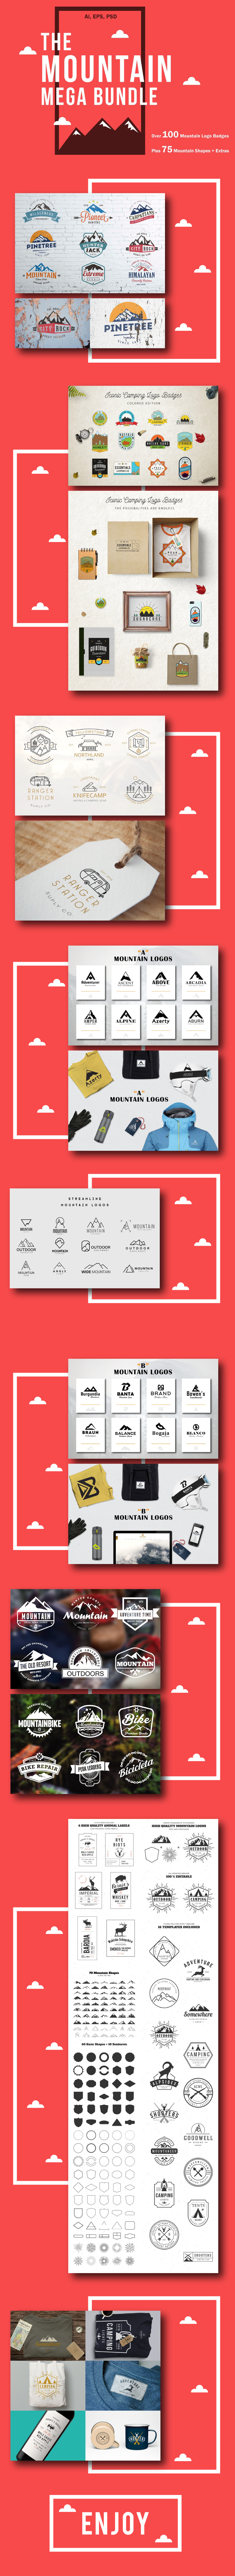 The Mountain Logos Mega Bundle